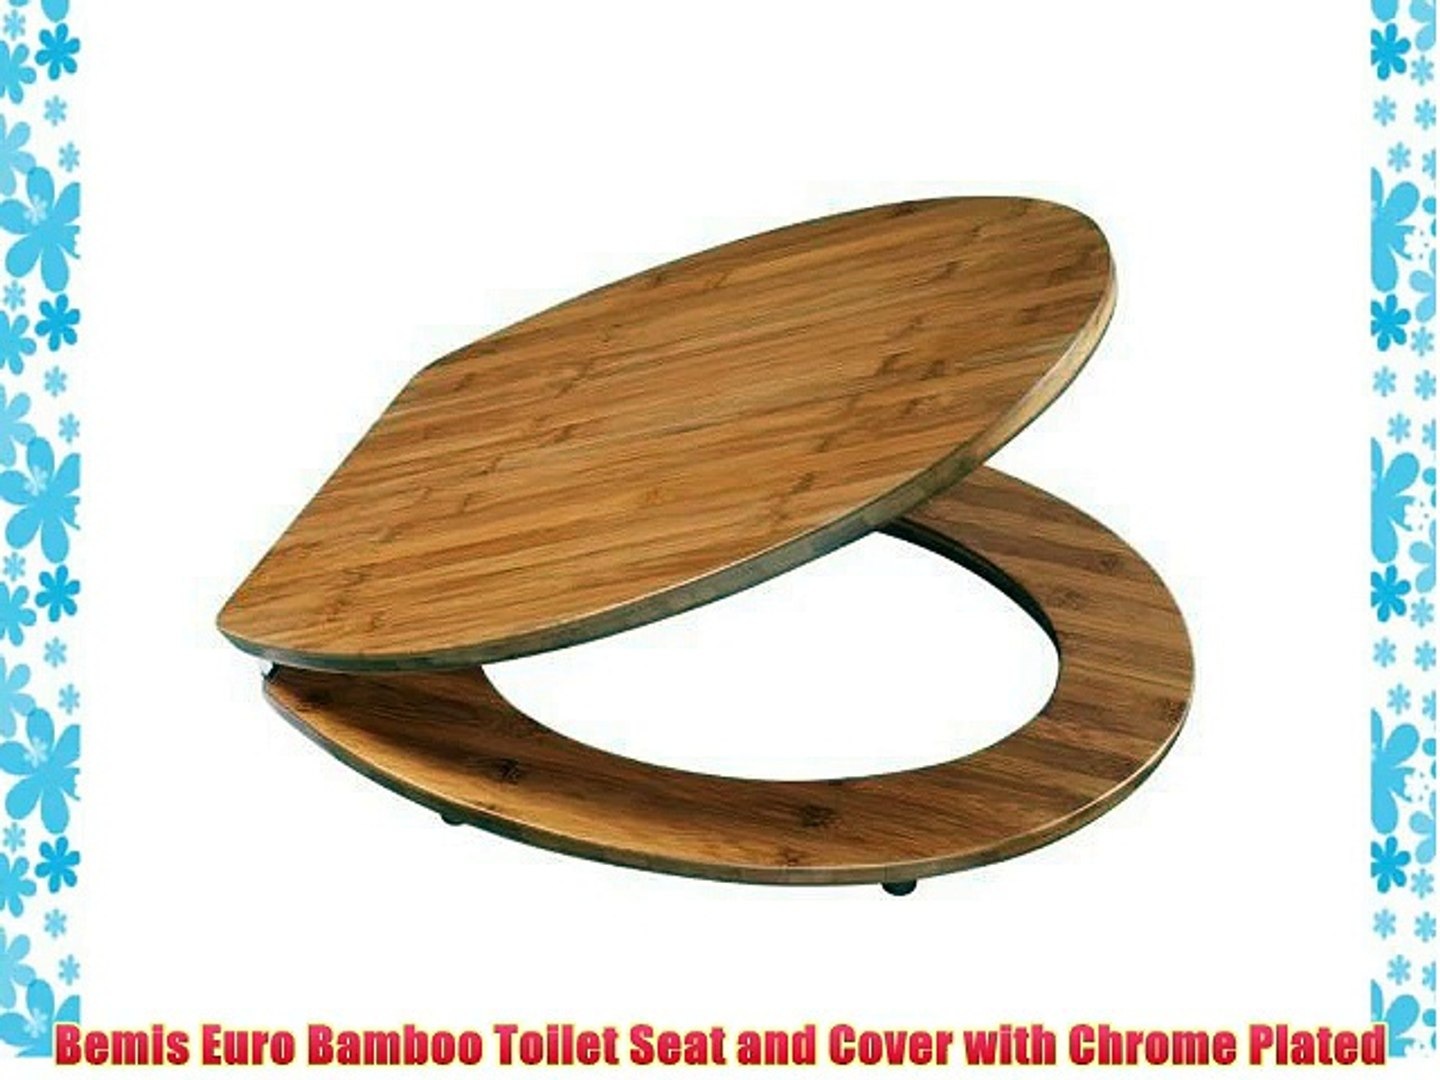 Remarkable Bemis Euro Bamboo Toilet Seat And Cover With Chrome Plated Machost Co Dining Chair Design Ideas Machostcouk